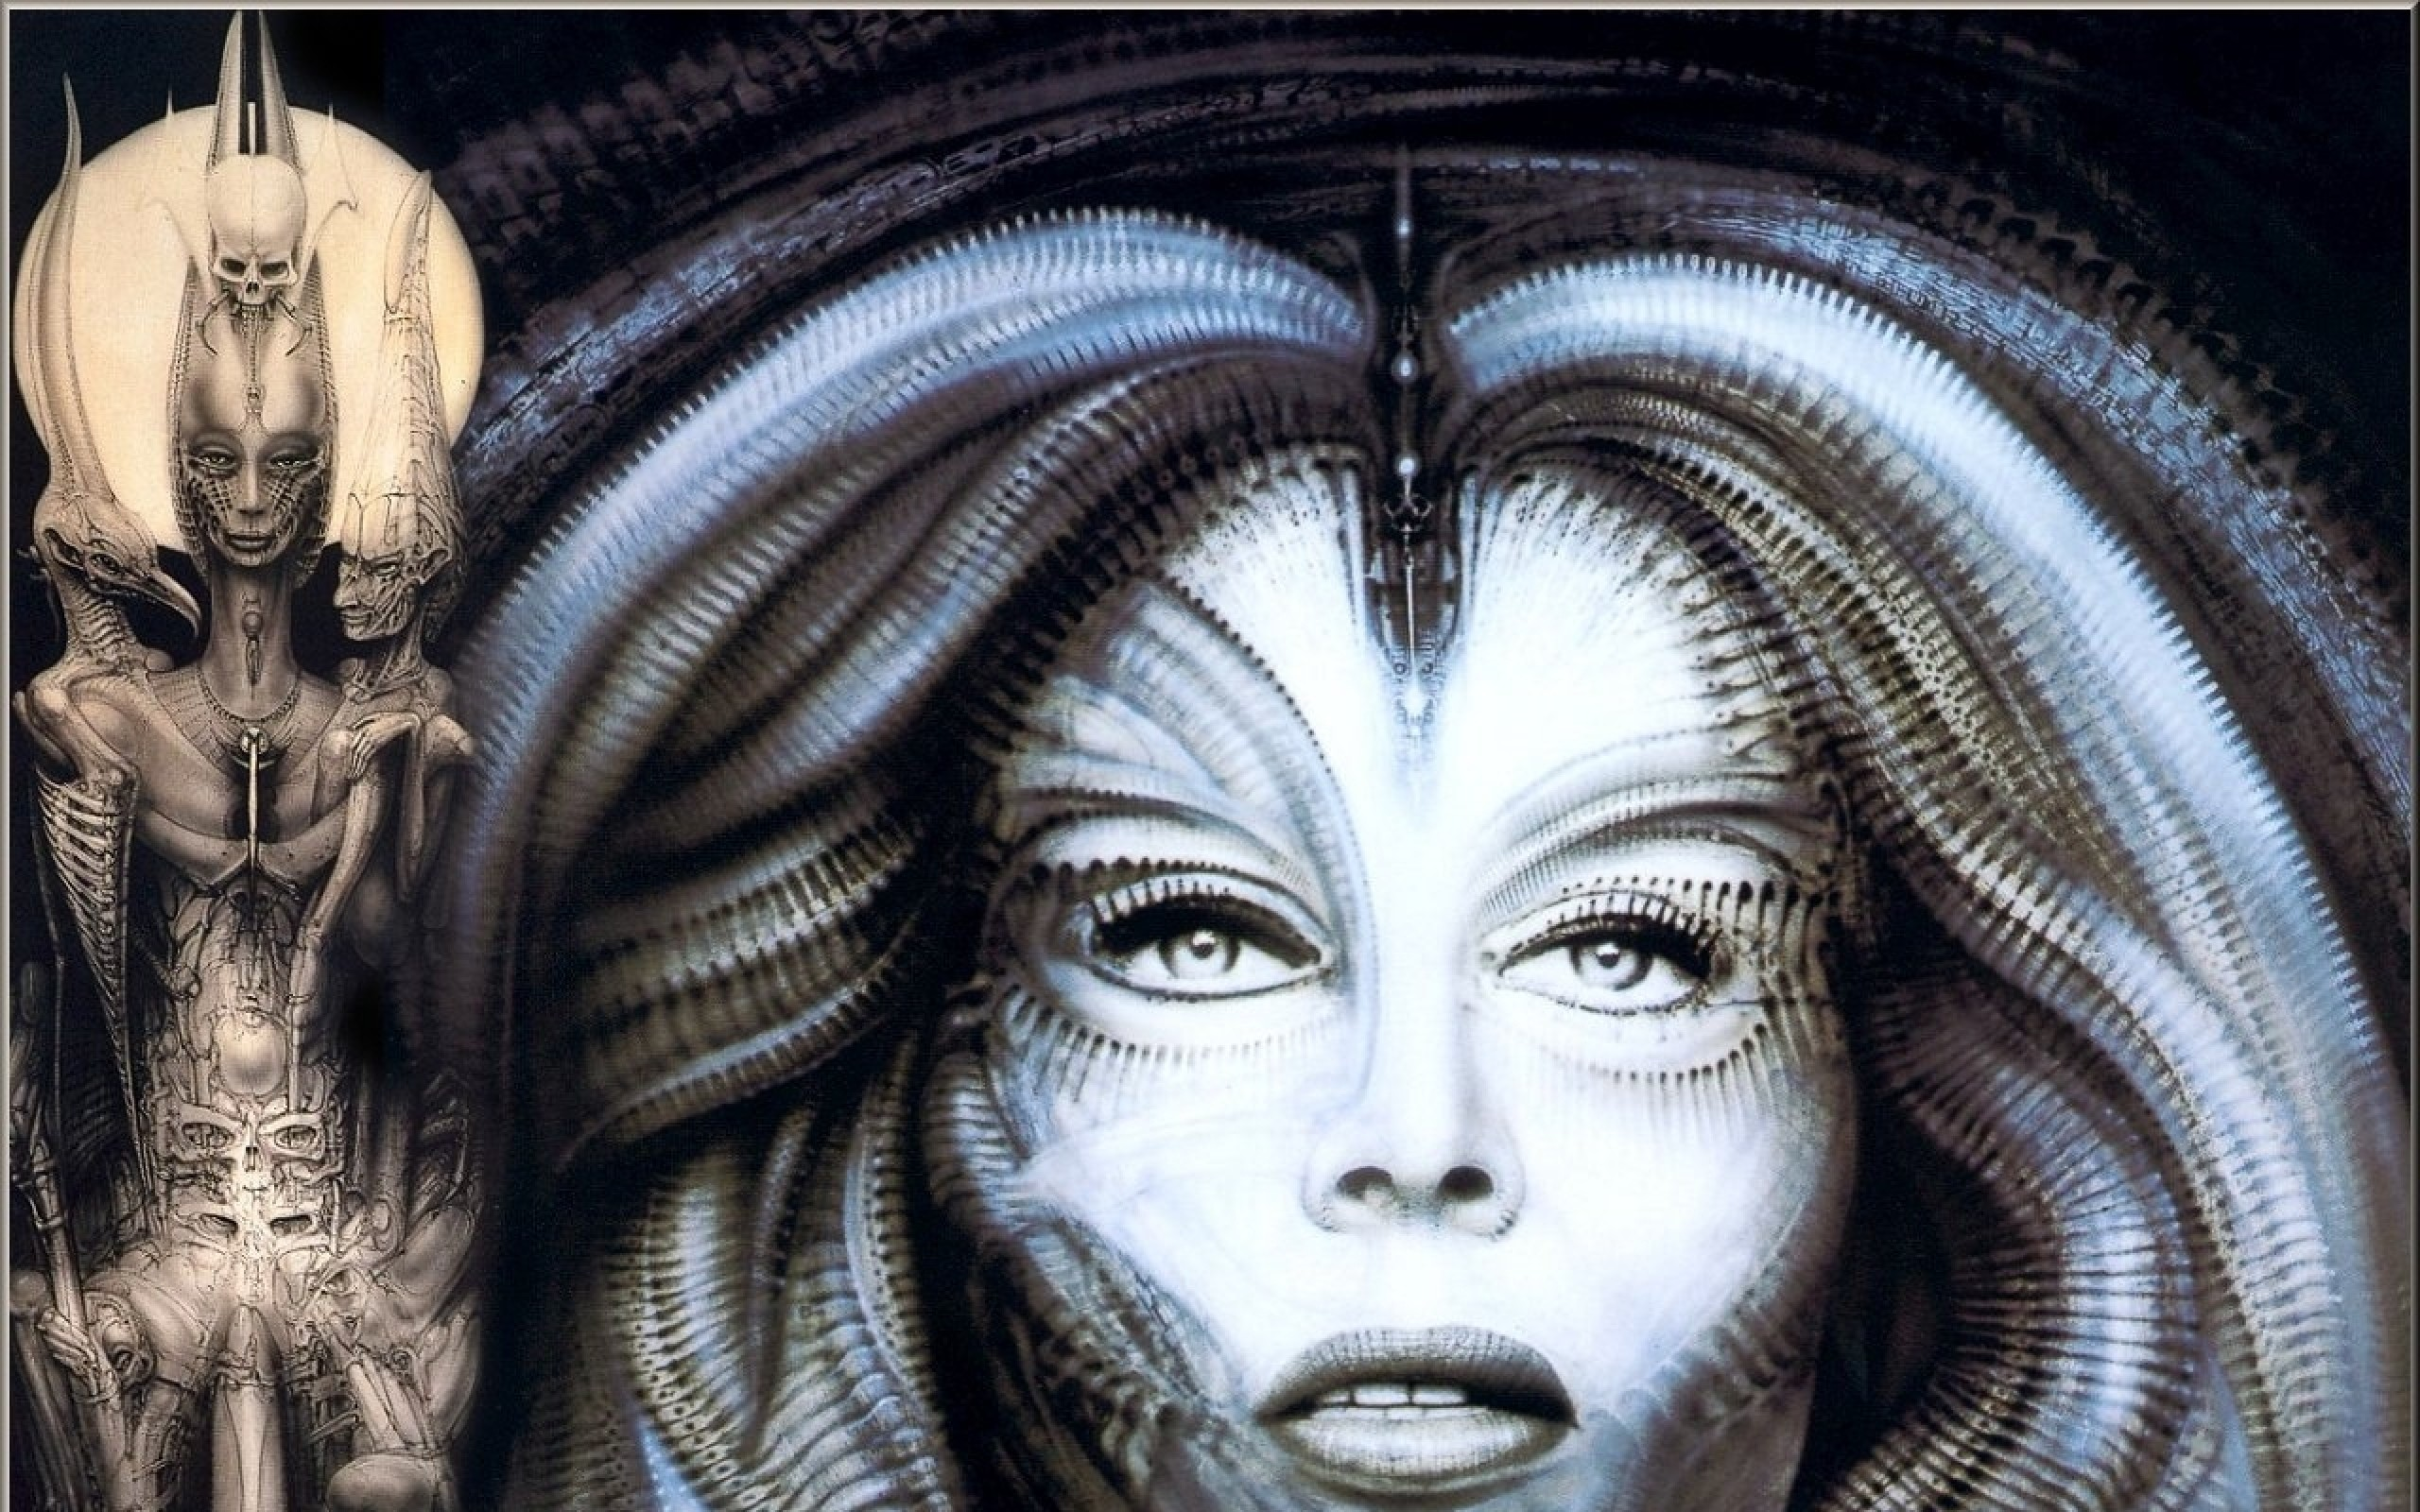 giger wallpaper hr hd - photo #24